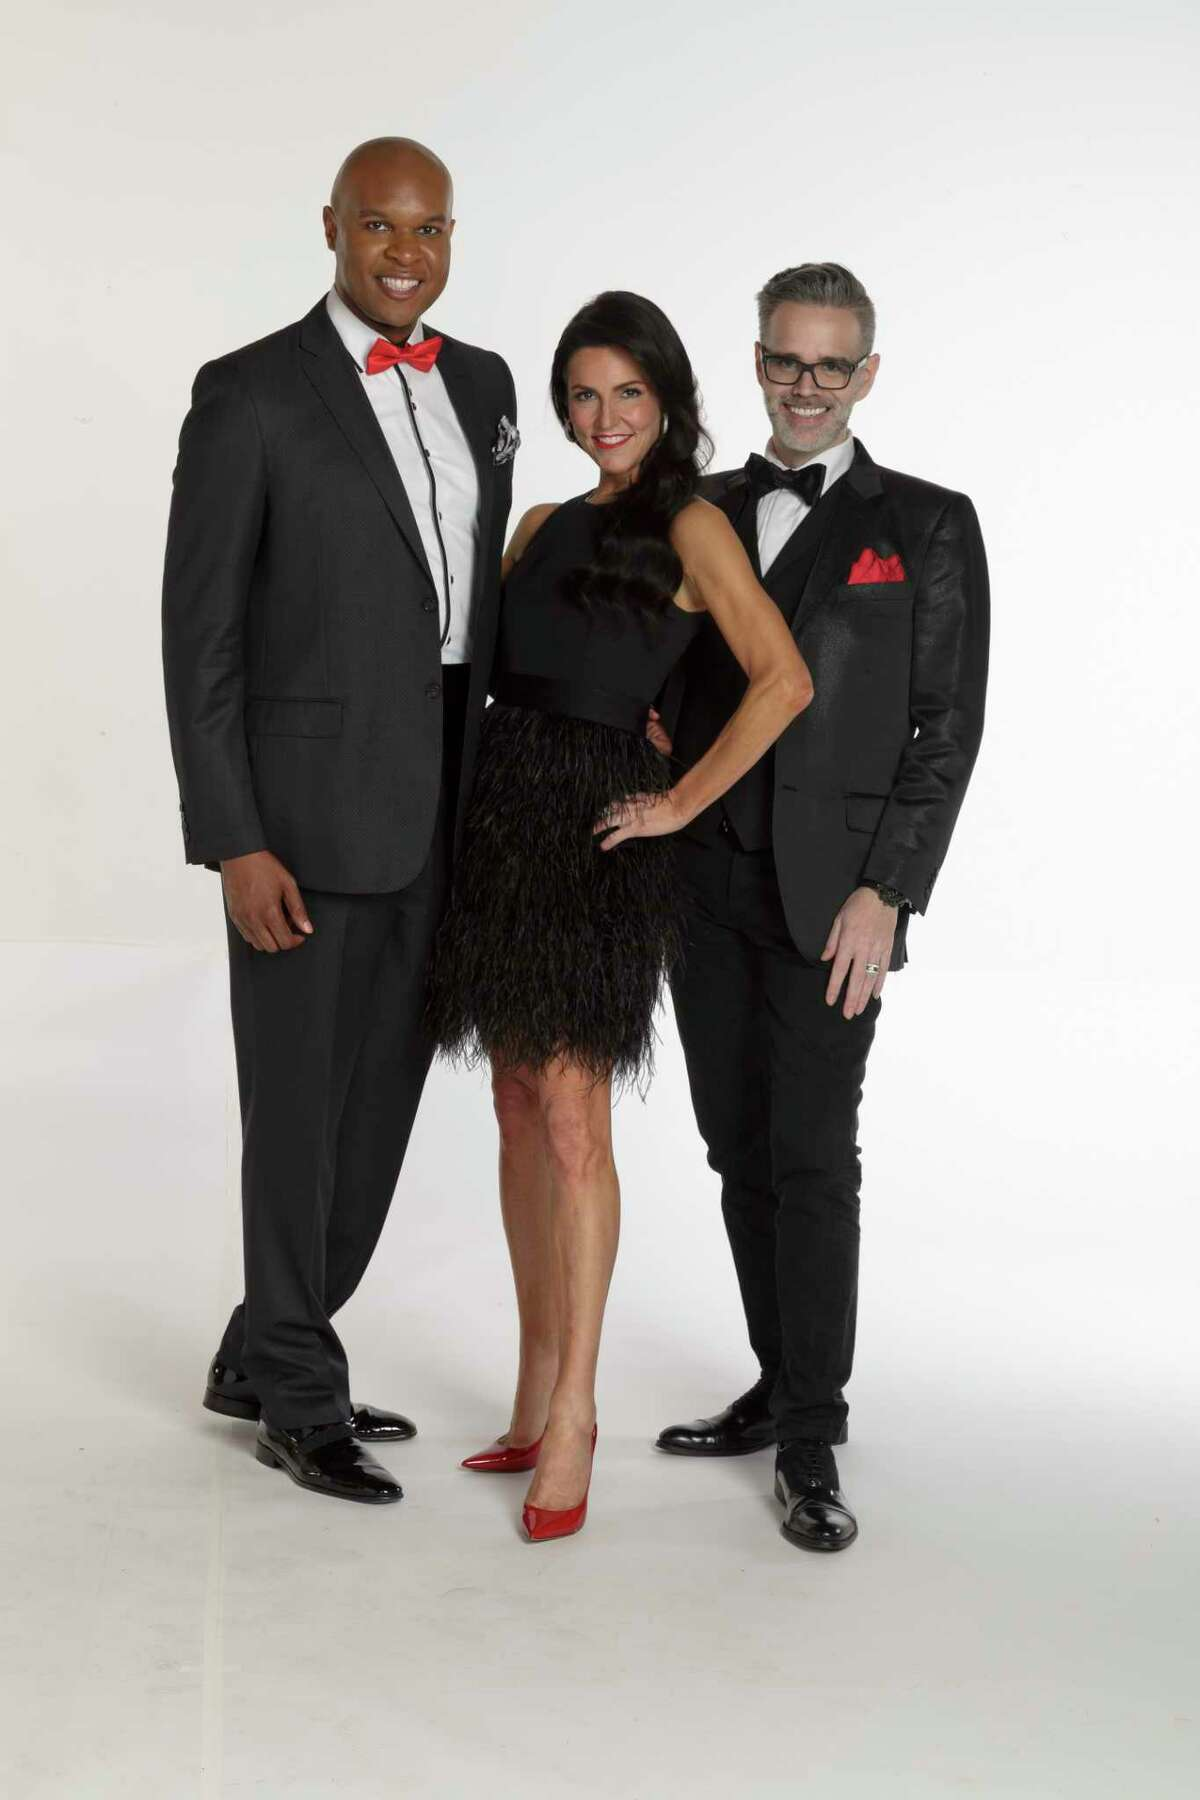 Dine Out For Life chairs Travis Torrence, Jessica Rossman and MIchael Pearce.On April 26 participating restaurants in Houston will donate a percentage of sales to AIDS Foundation Houston.